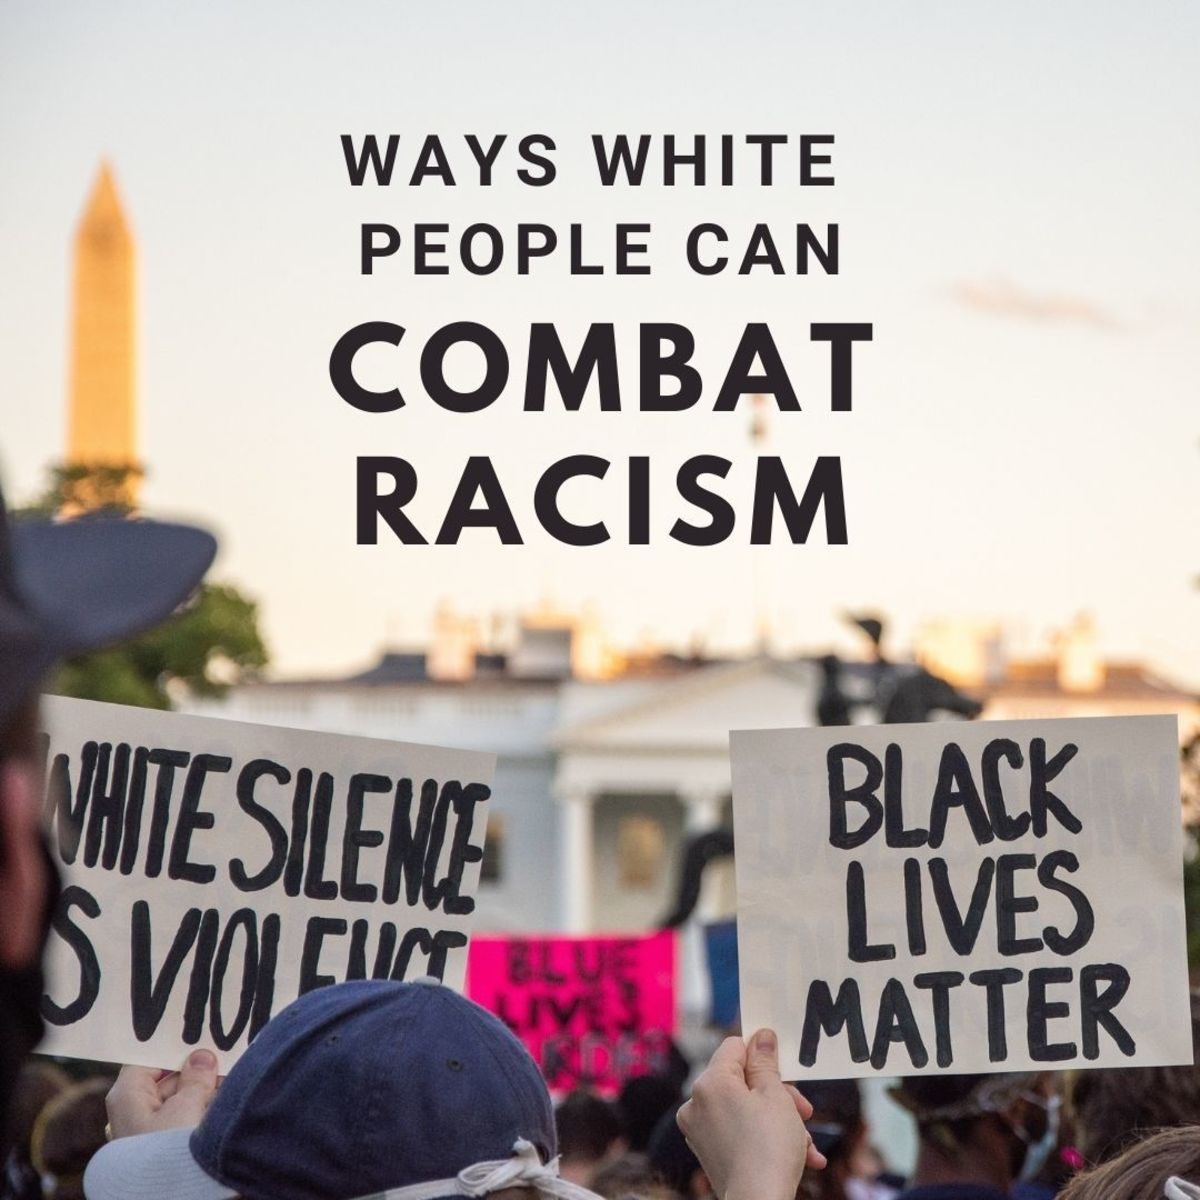 Here are 25 basic ways you can work to combat racism as a white person.